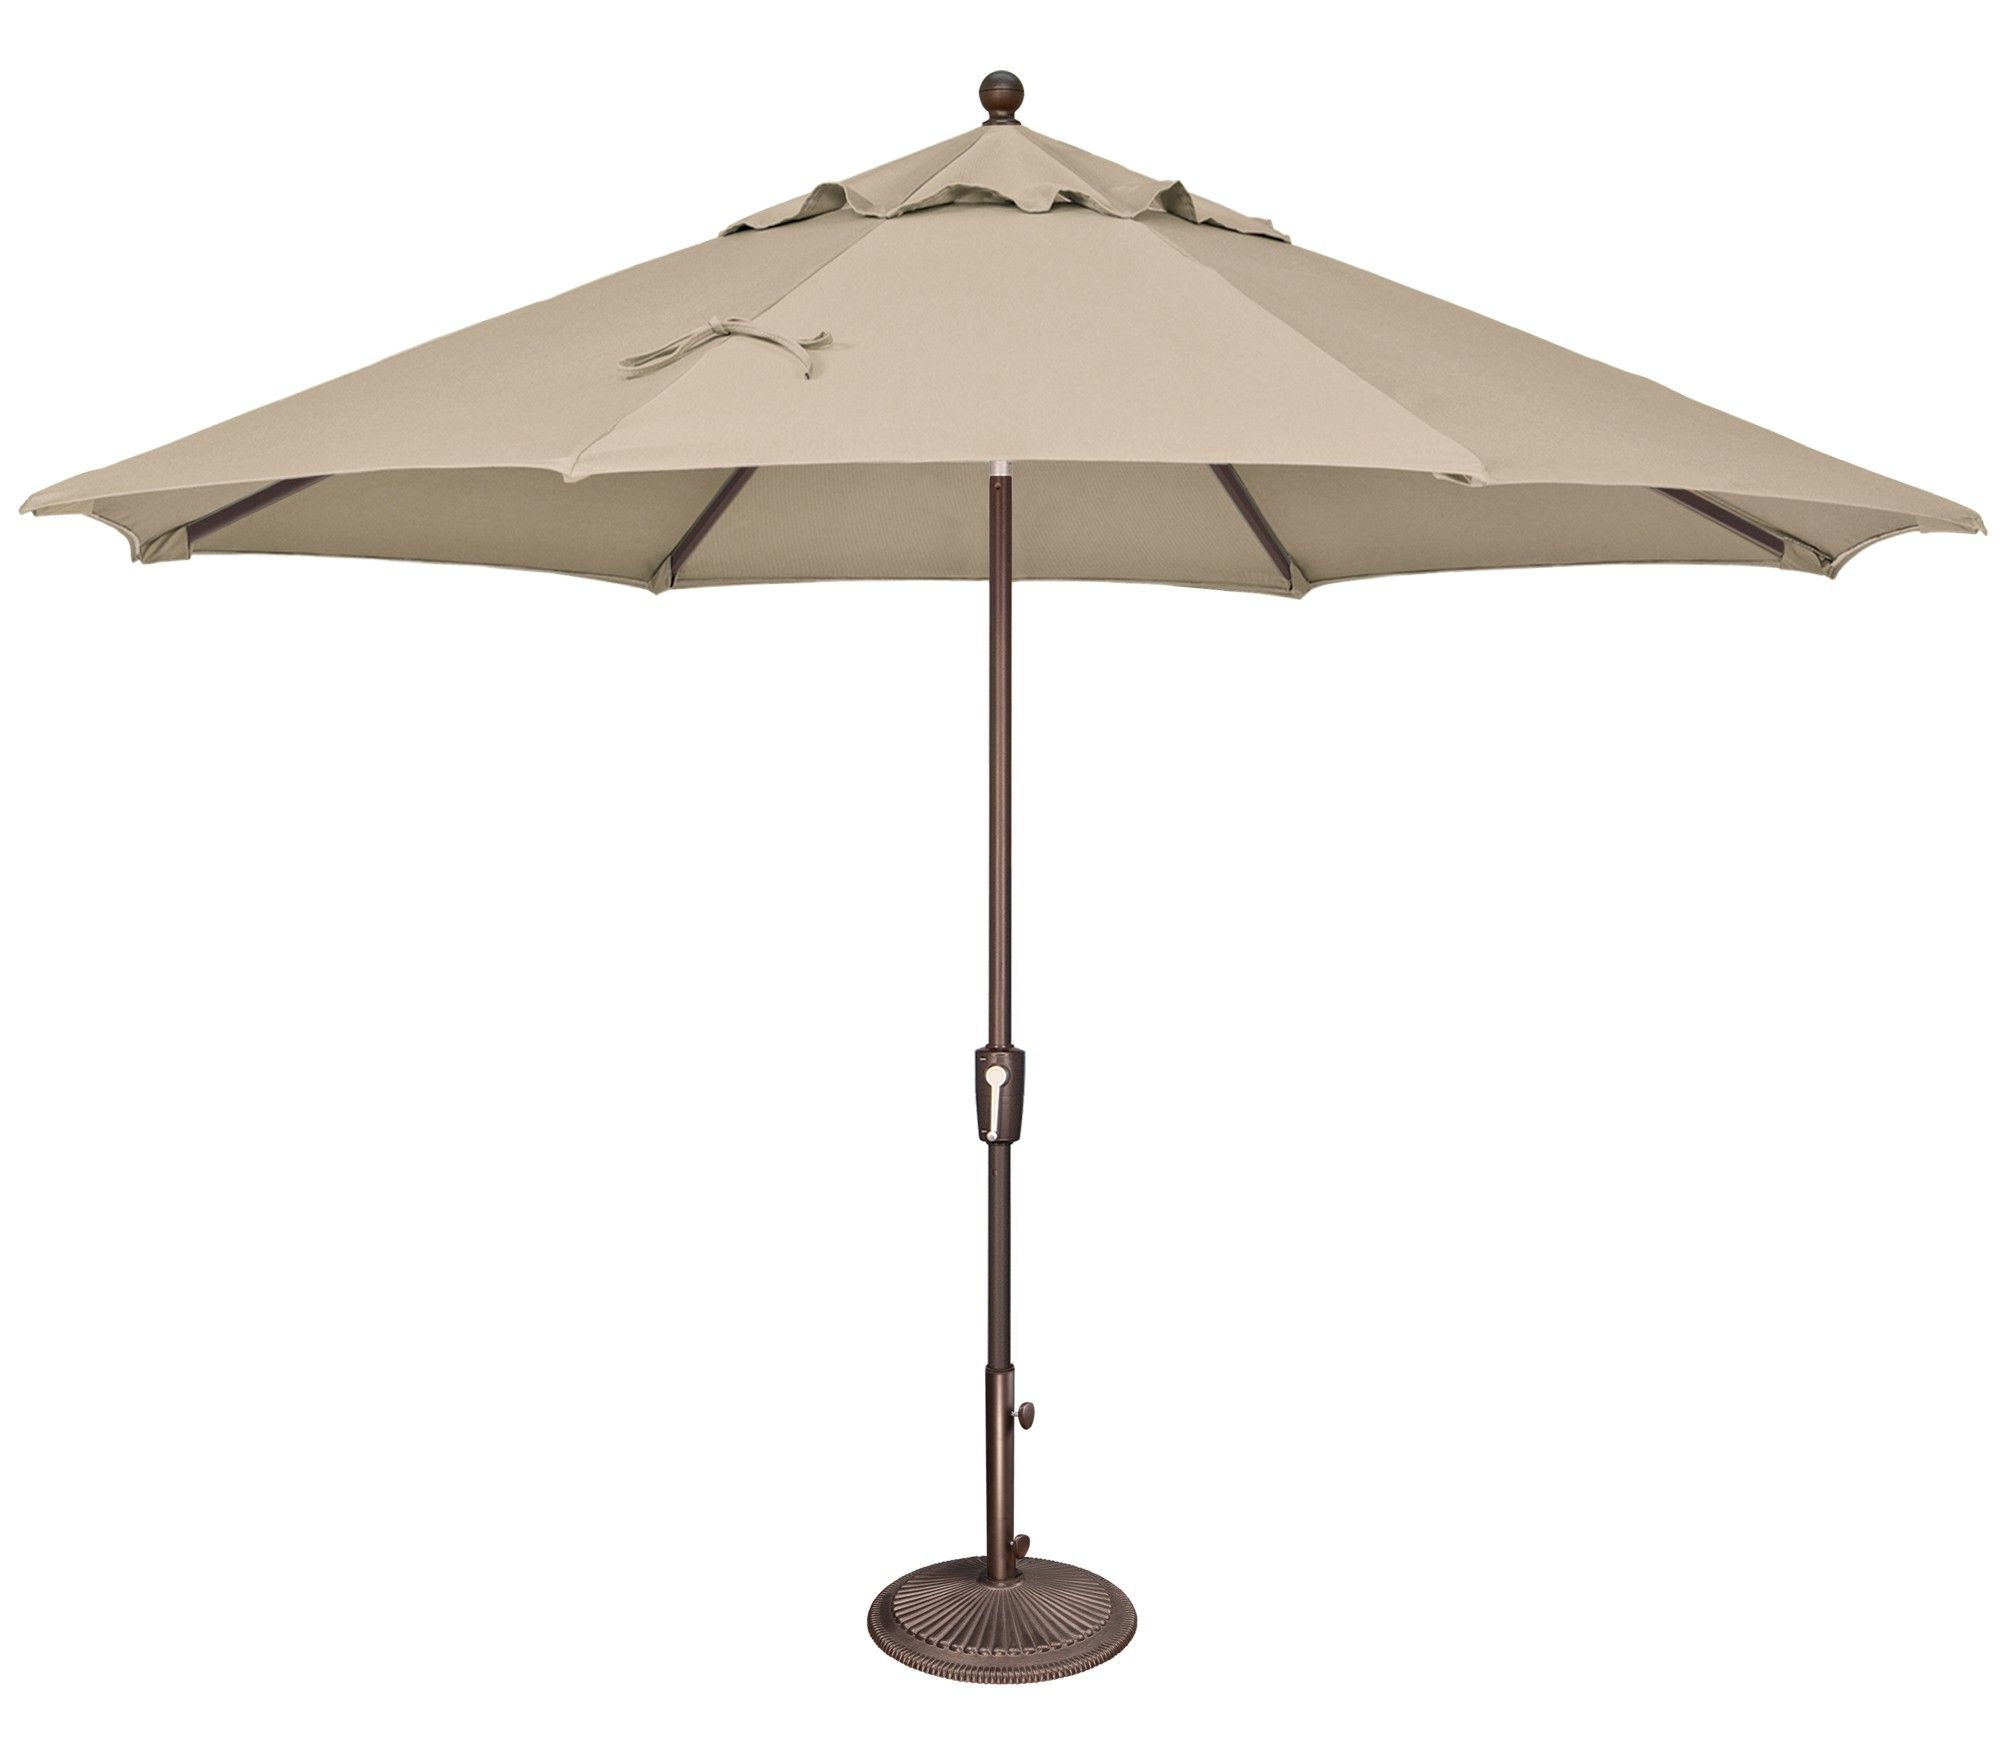 Trendy With These Professional Tips On Choosing An Outdoor Umbrella, Relief In Voss Cantilever Sunbrella Umbrellas (View 16 of 20)